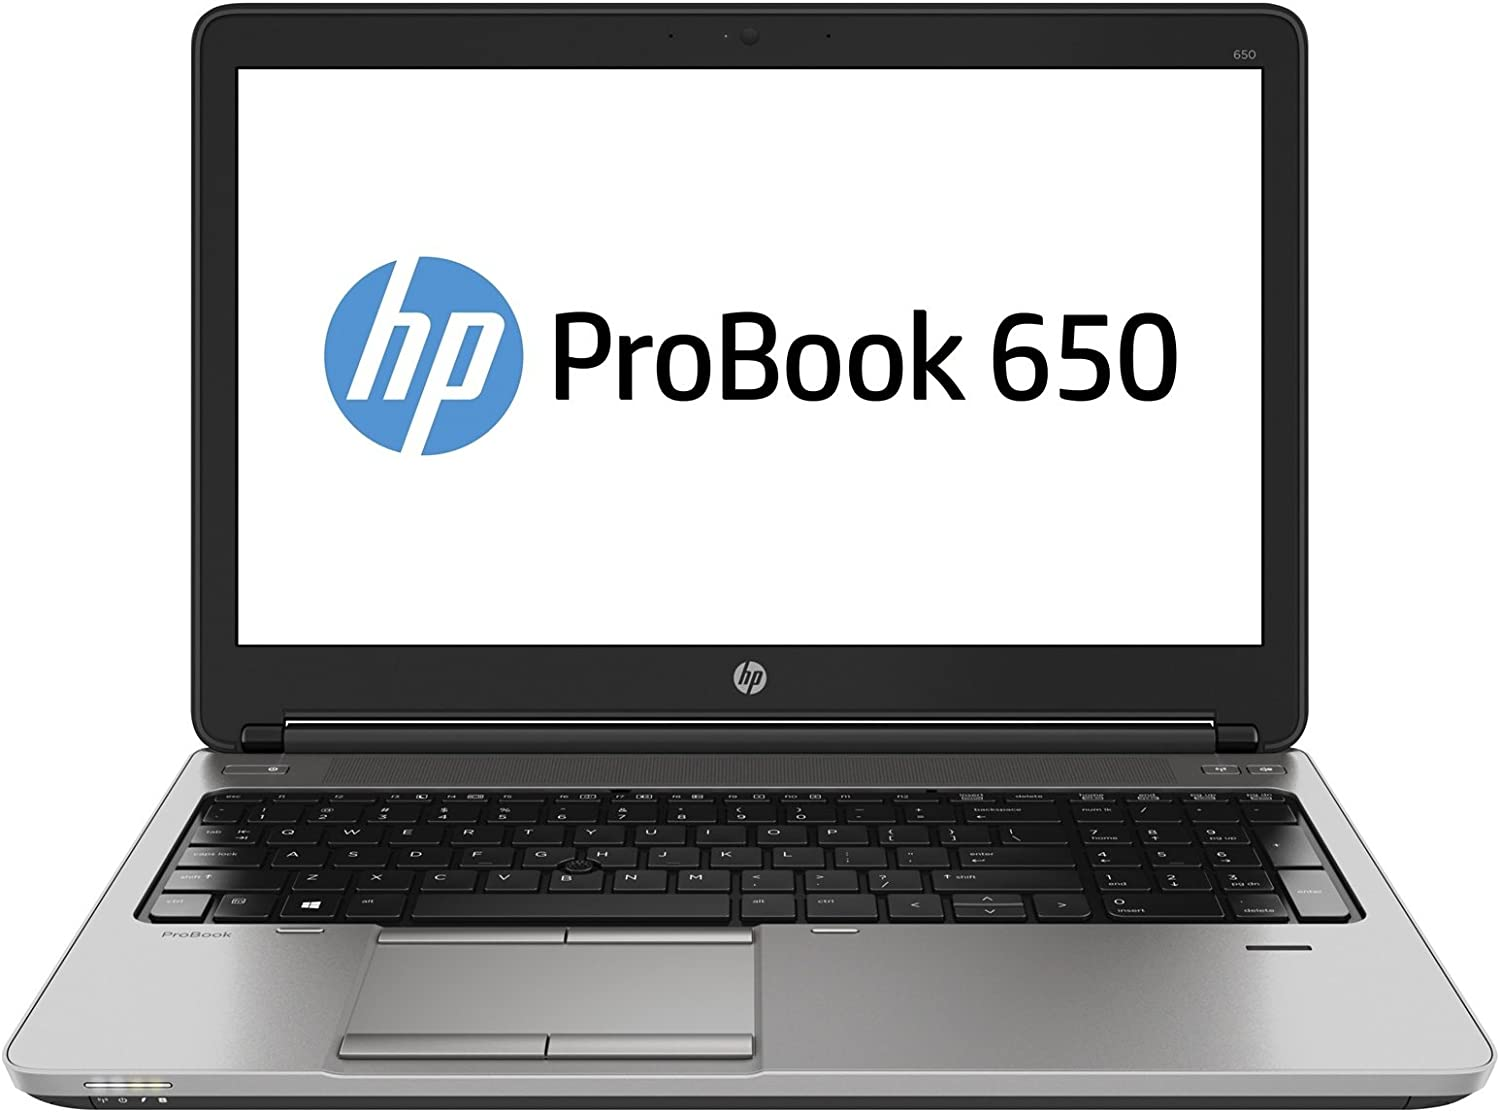 HP ProBook 640 G1 Intel i5-4300M 2.50GHz 8GB RAM 240GB SSD Windows 10 Pro (Renewed)